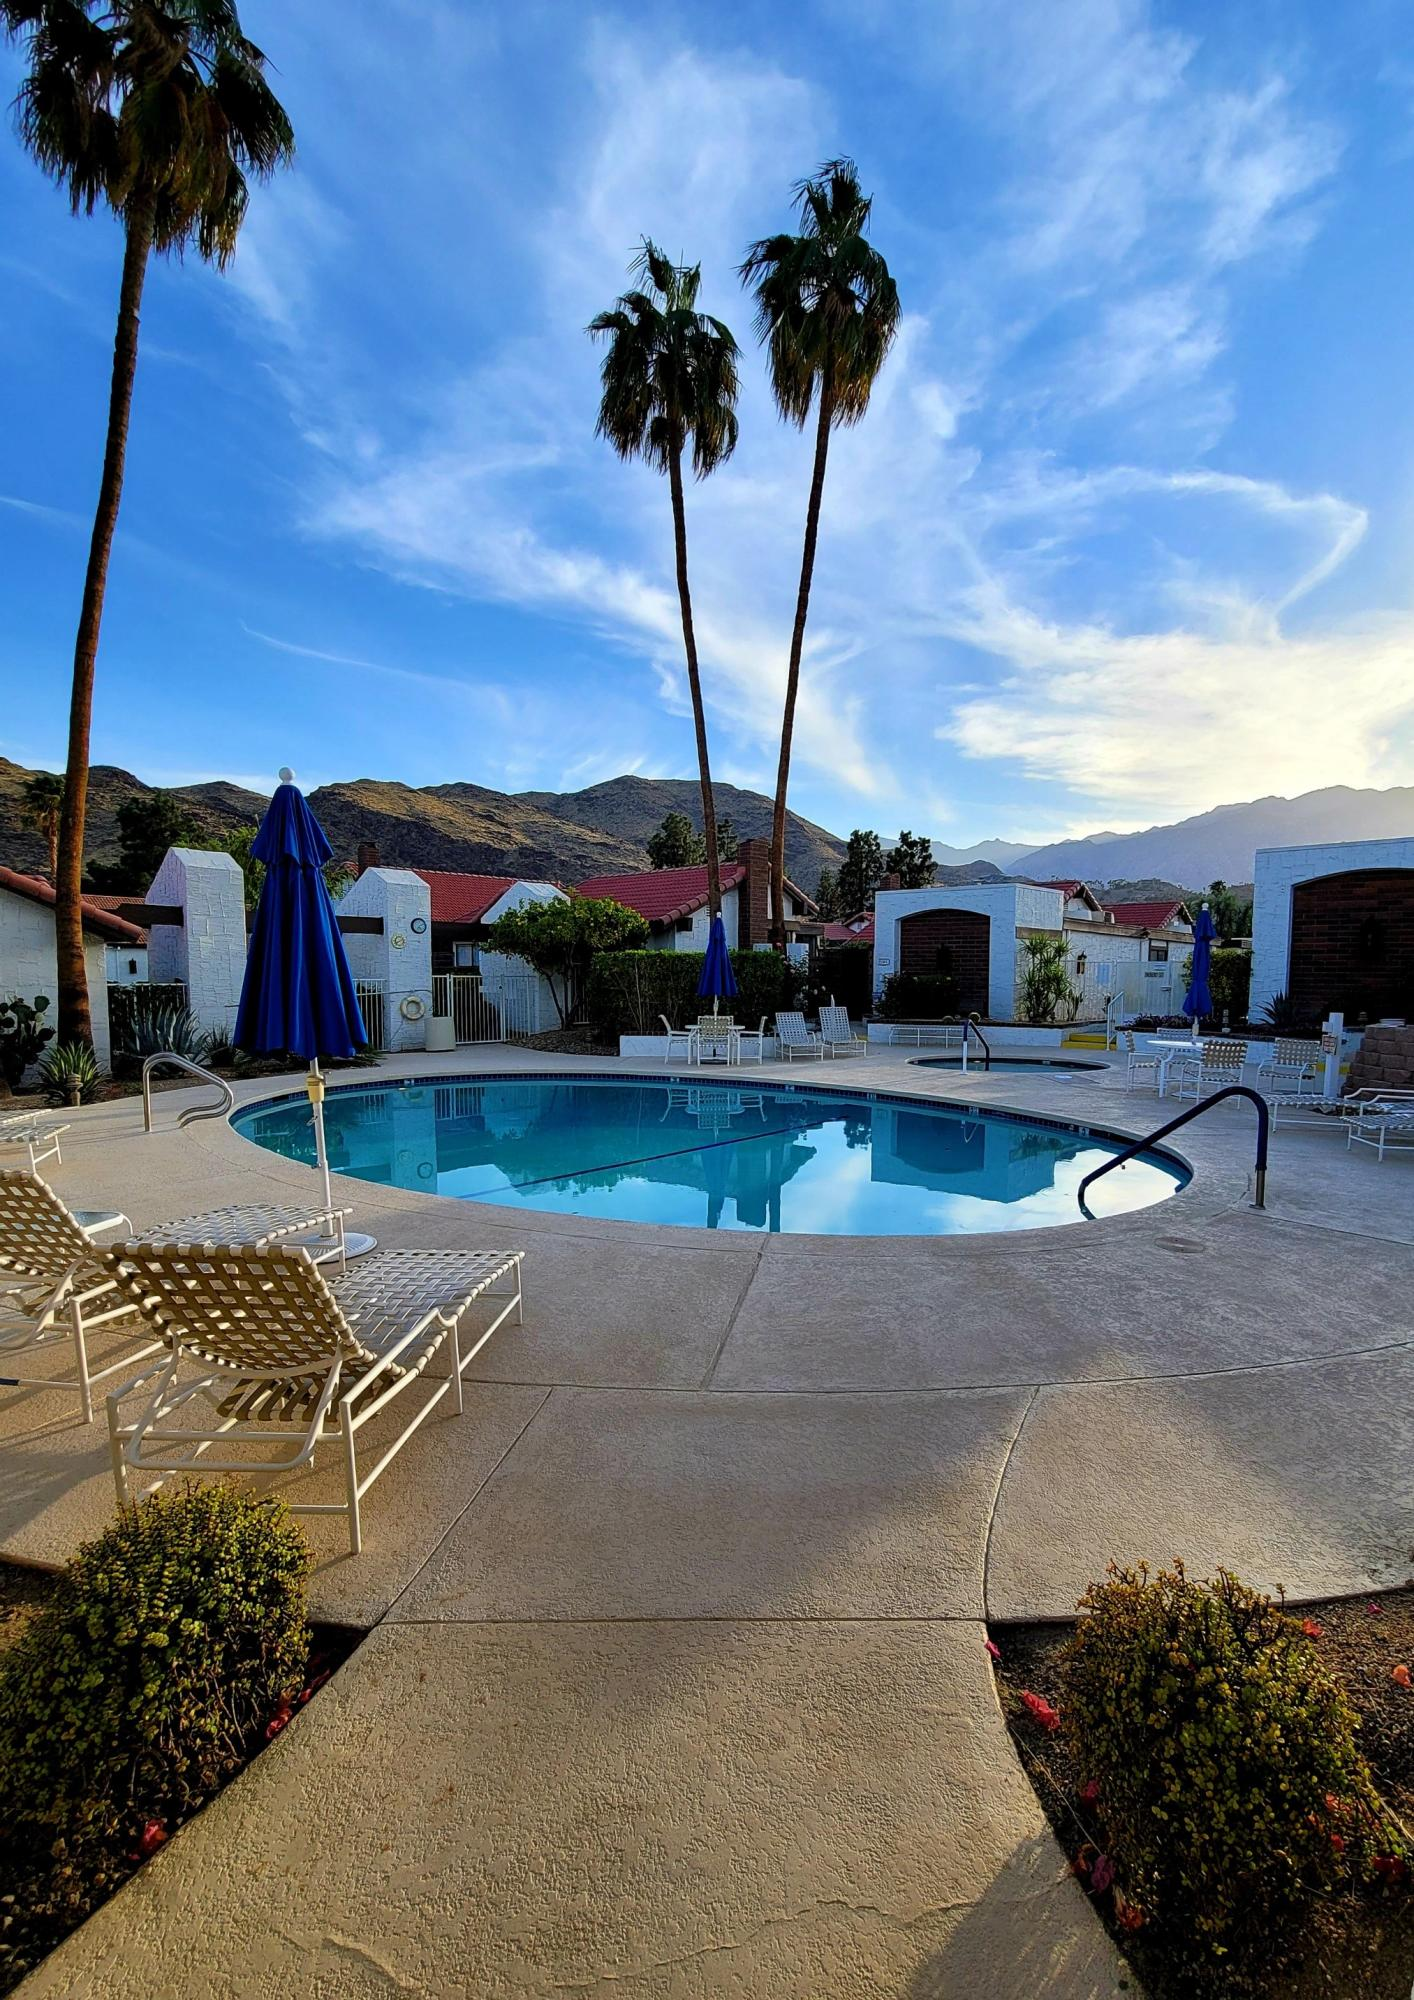 Property for sale at 2487 S Gene Autry Trail - C, Palm Springs,  California 92264